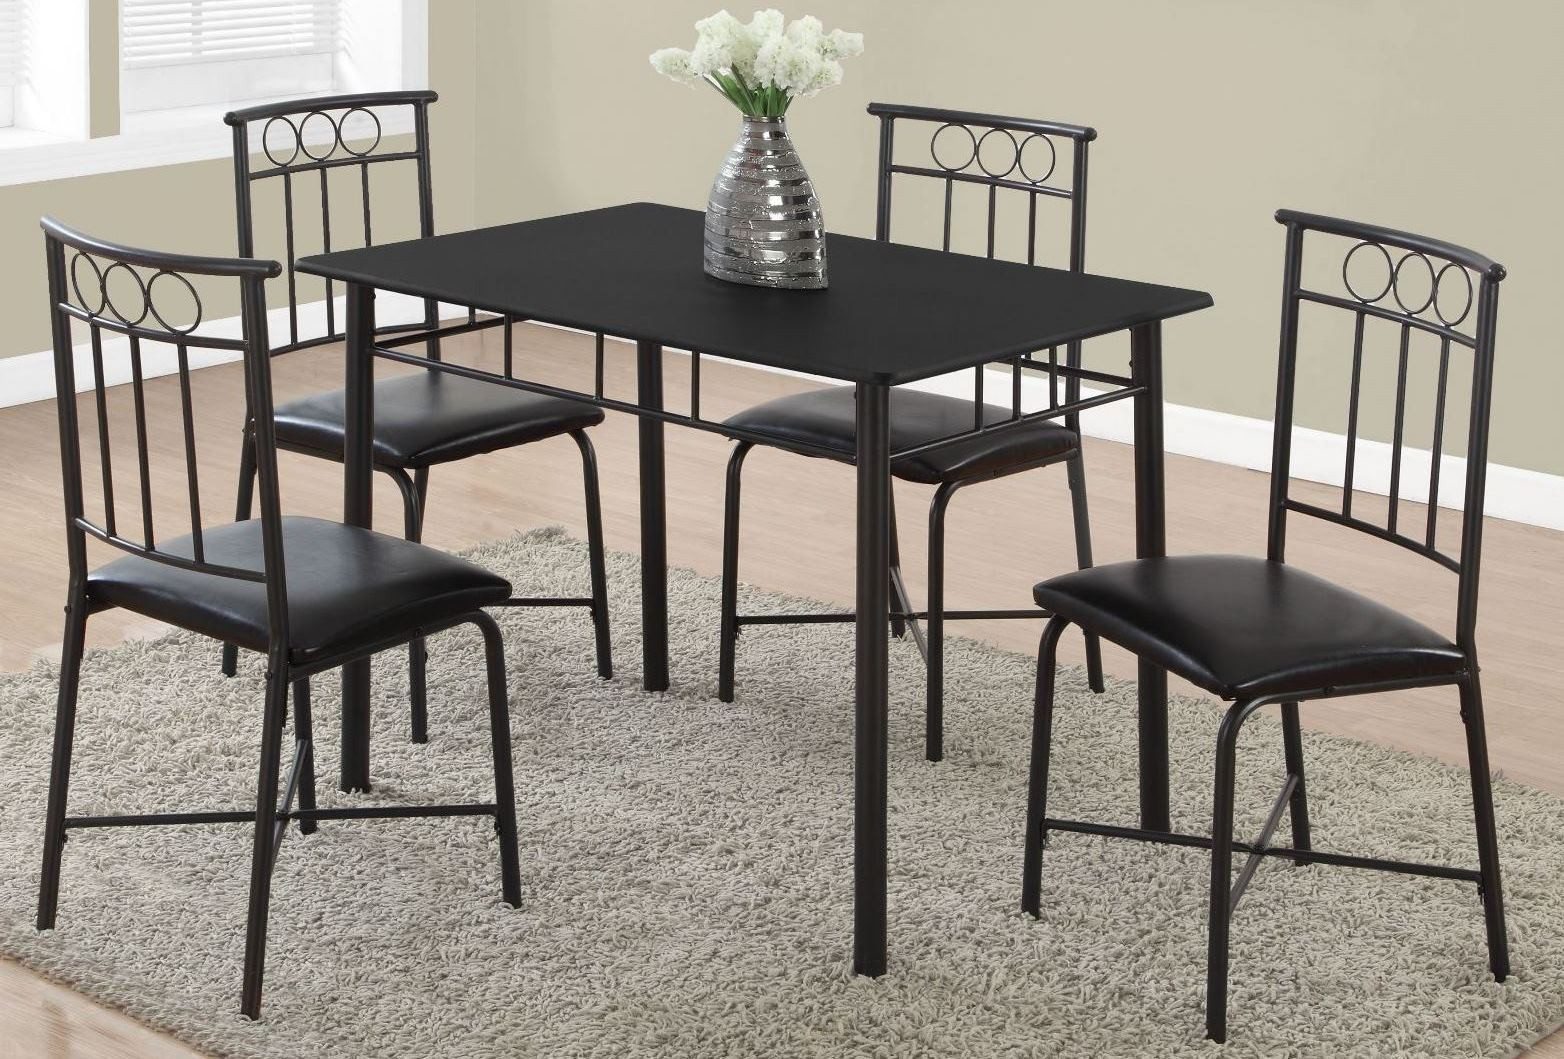 Black metal 5 piece dining room set 1018 monarch for 2 piece dining room set